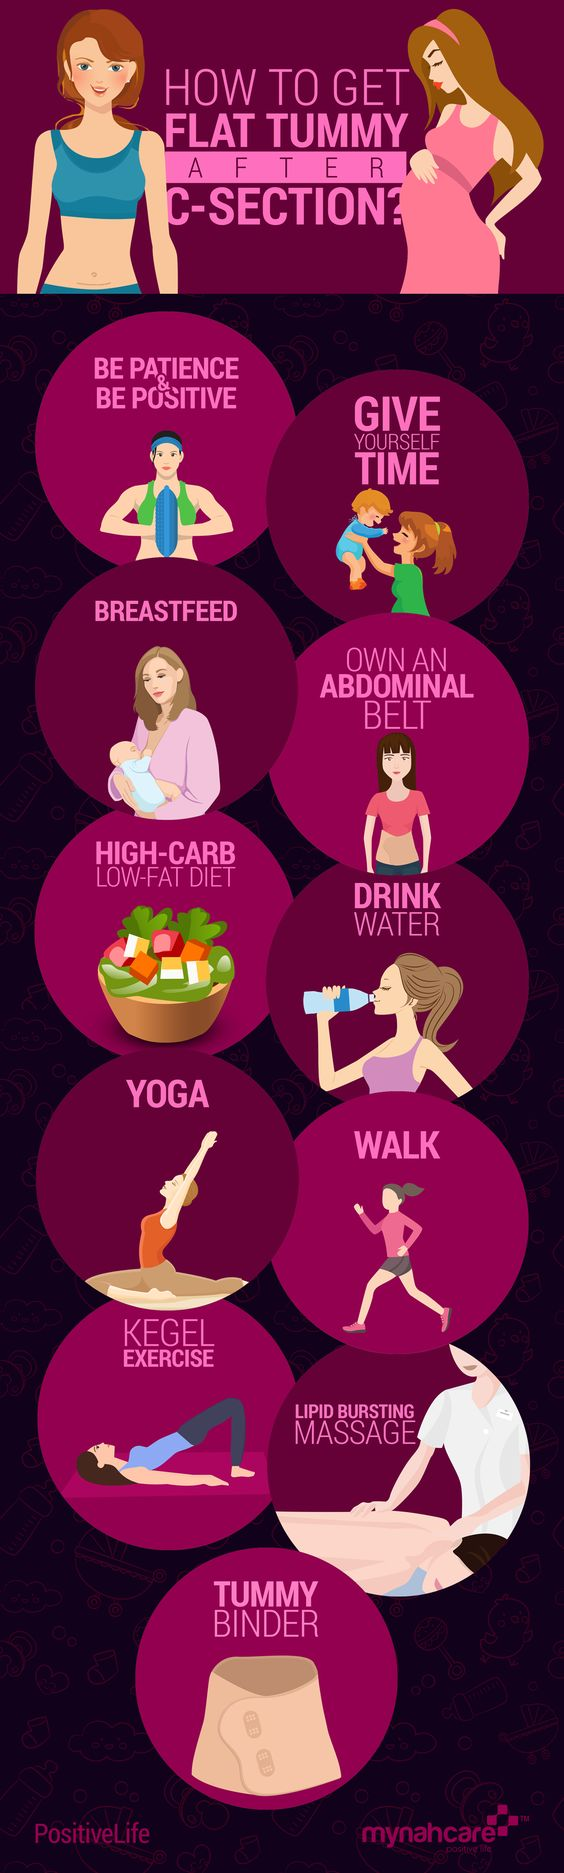 How To Lose Weight After Pregnancy - Women Fitness Magazine